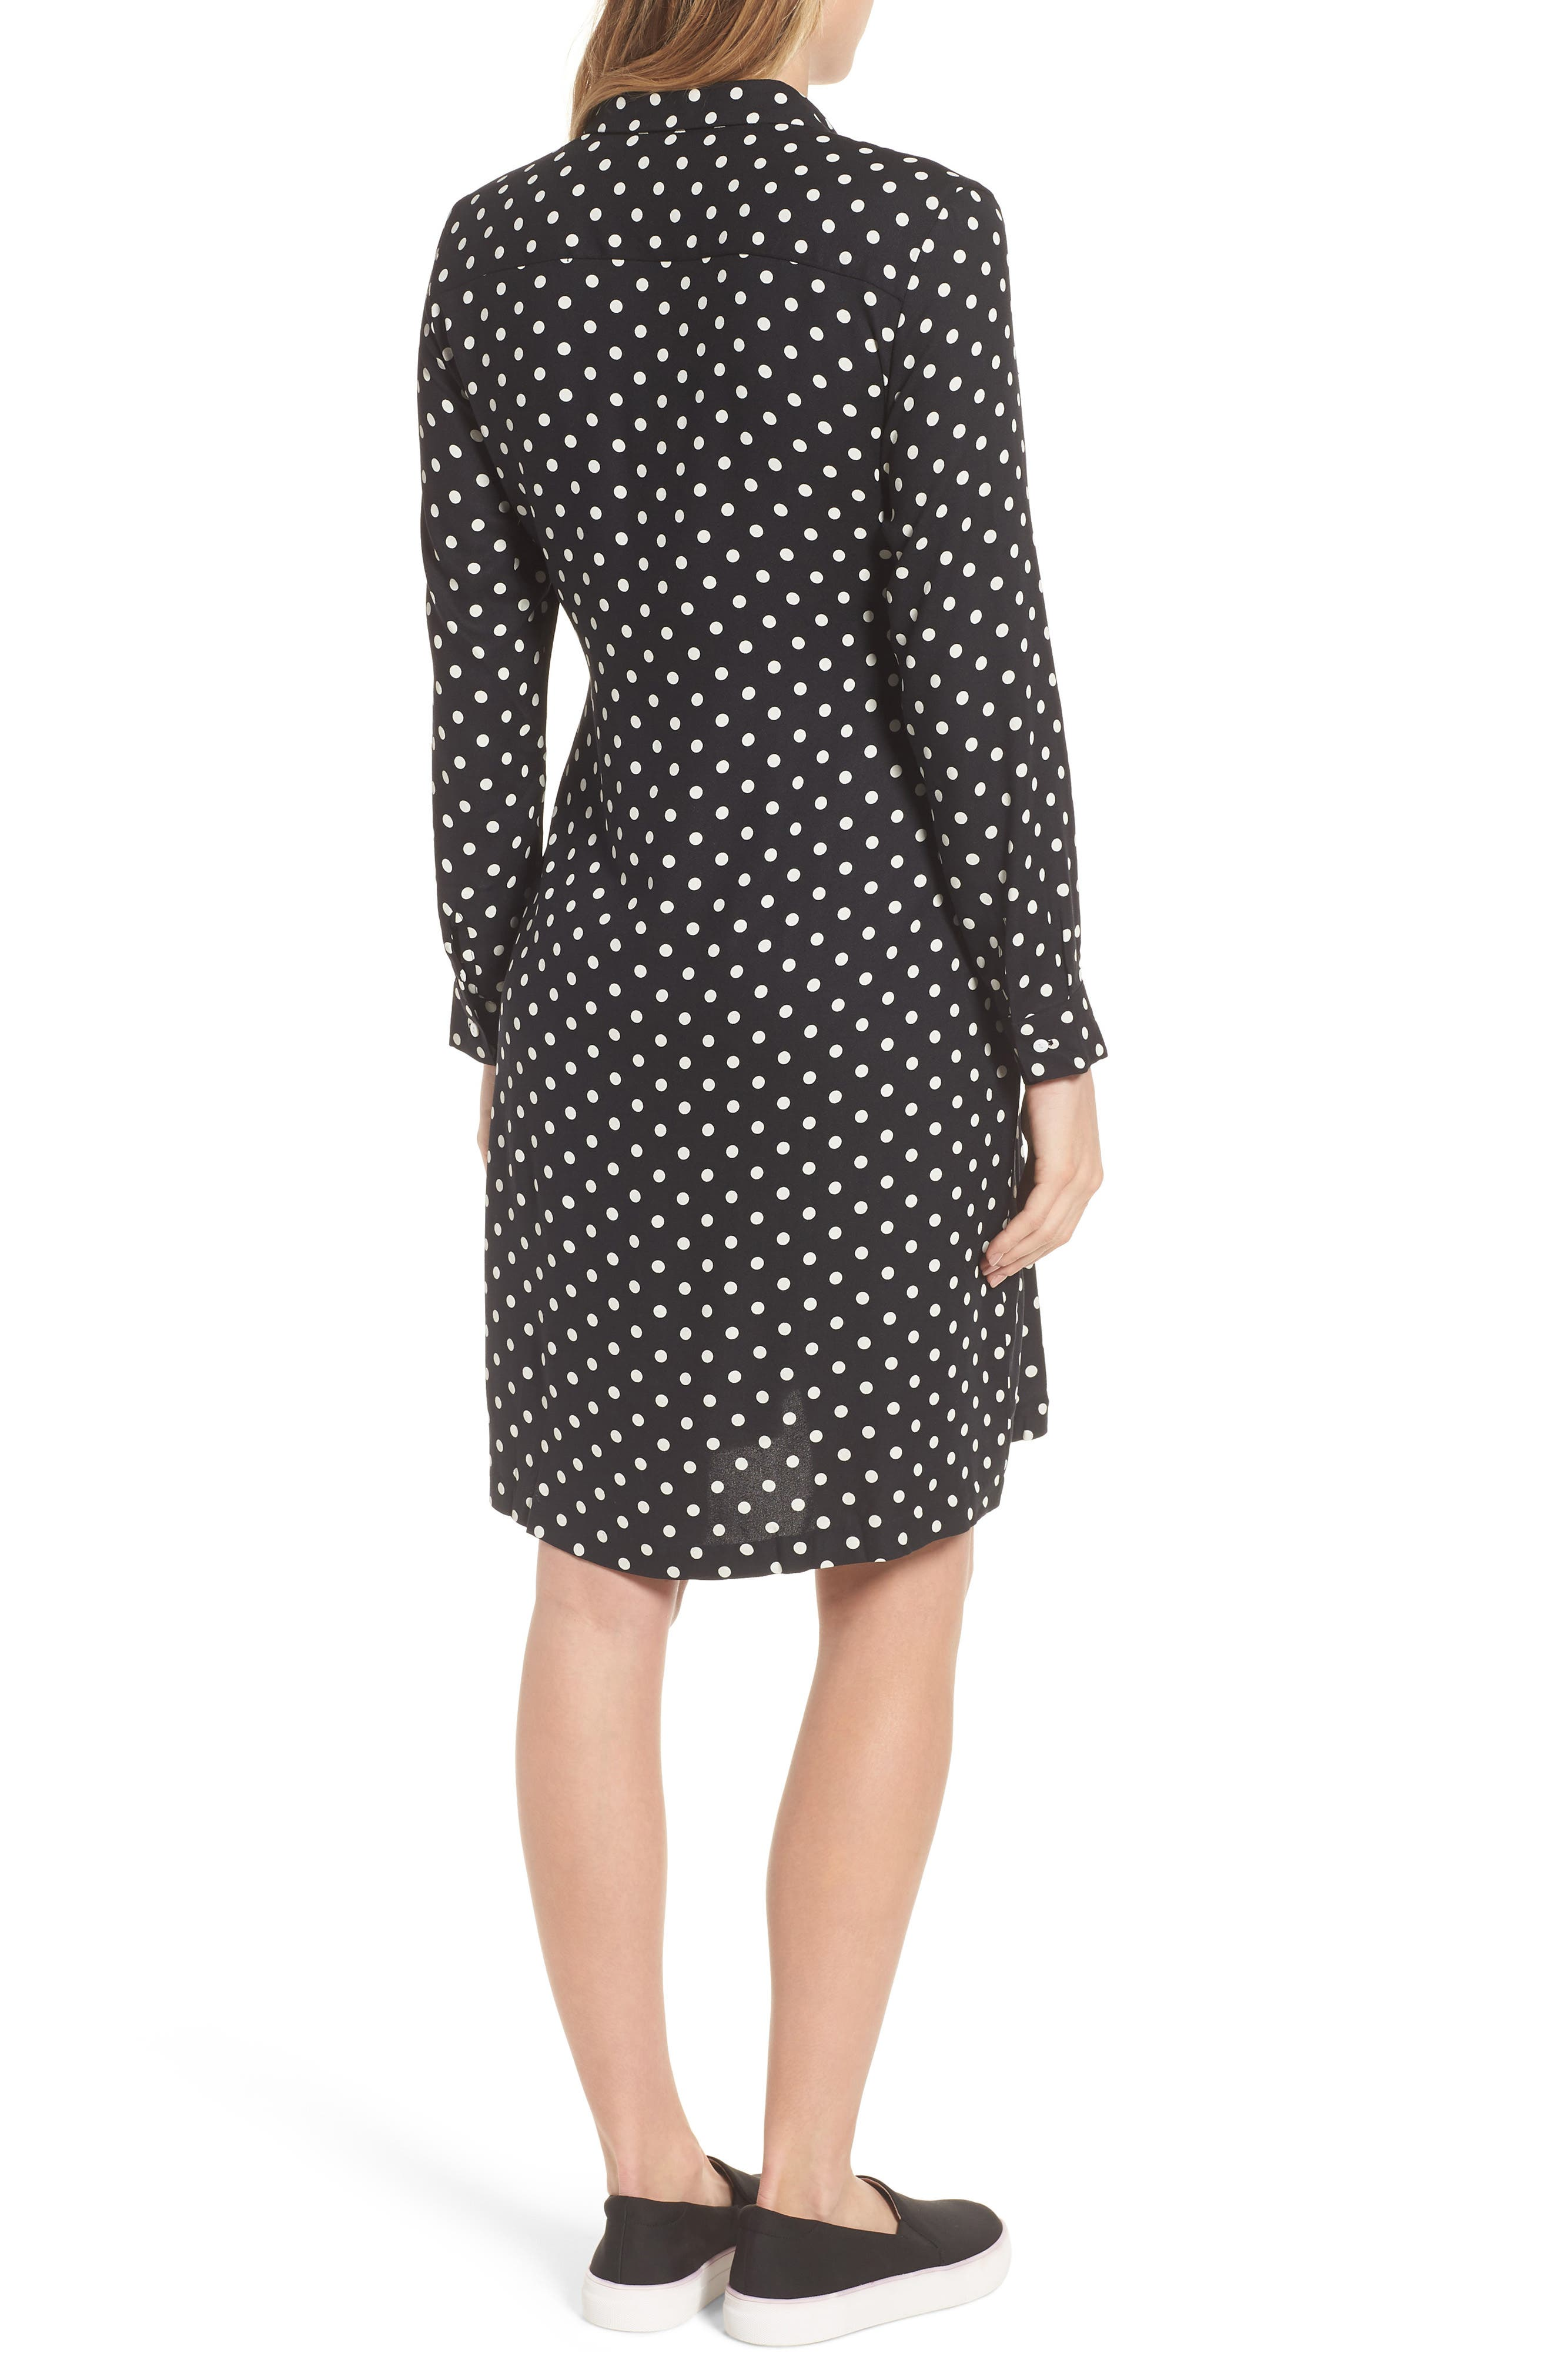 ISABELLA OLIVER,                             Elisha Maternity Shirtdress,                             Alternate thumbnail 2, color,                             BLACK/WHITE POLKA CREPE